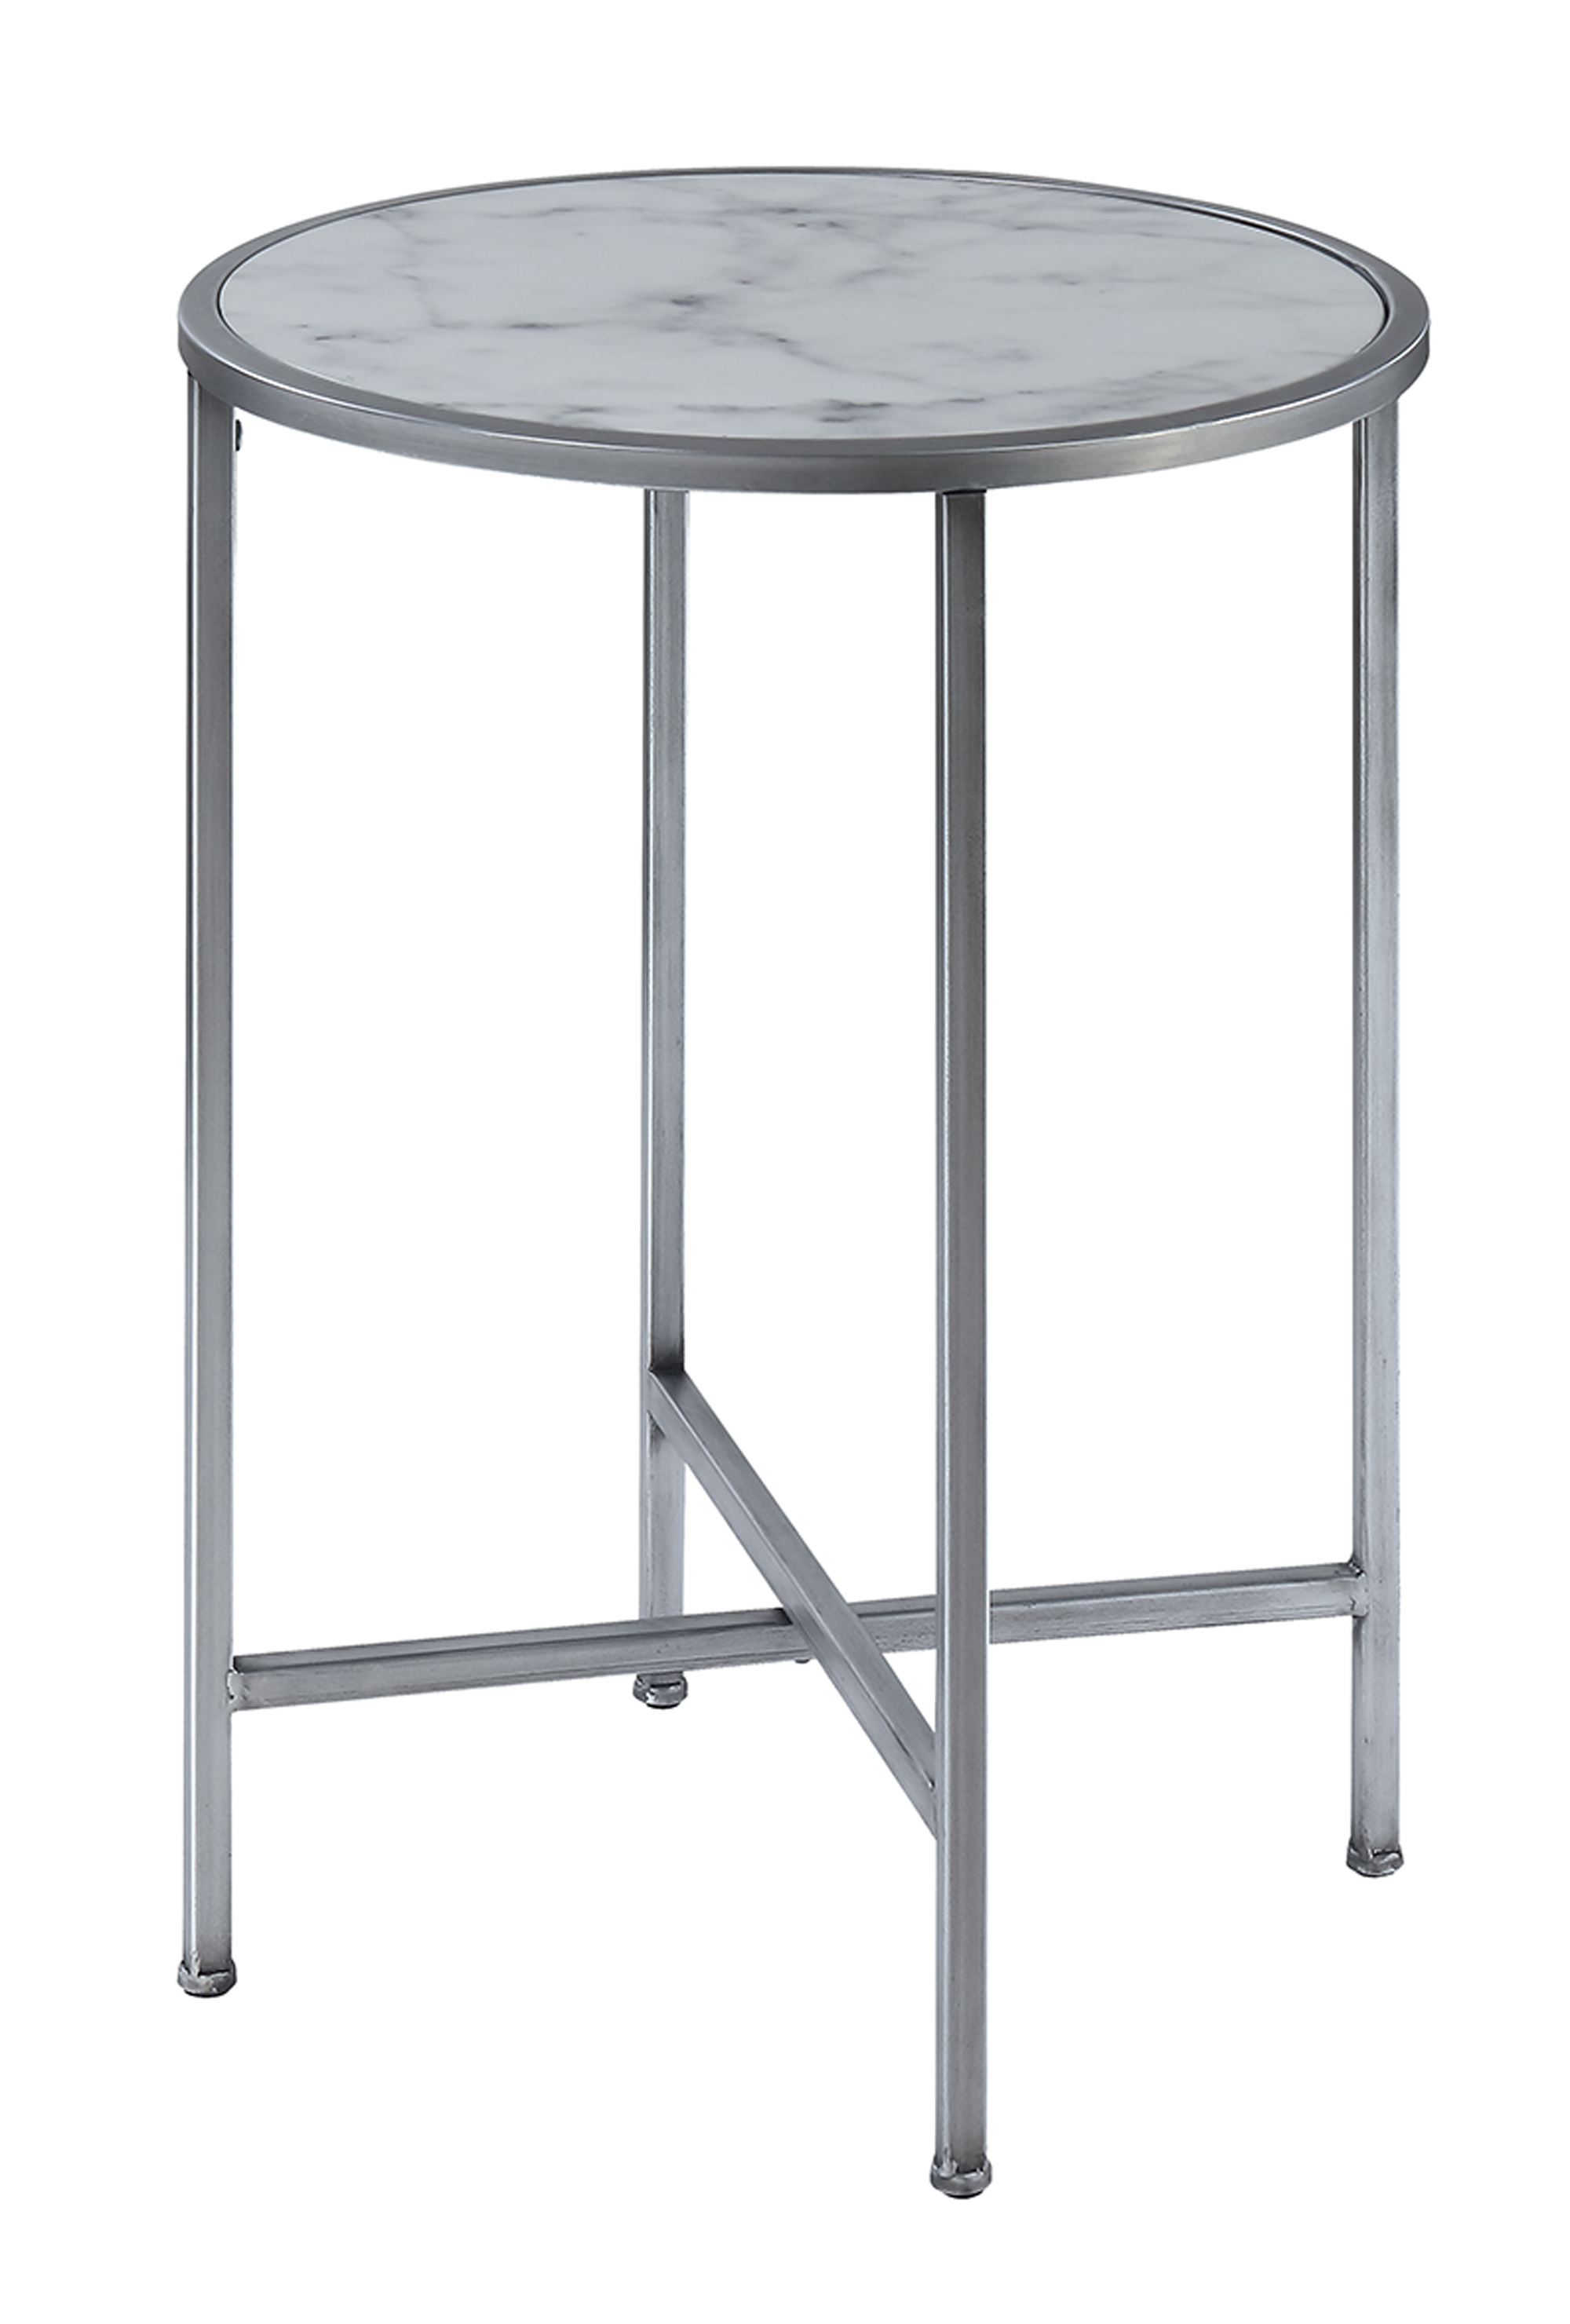 Convenience Concepts 413455S Gold Coast Faux Marble Round End Table Faux Marble & Silver - 24.5 x 18 x 18 in.